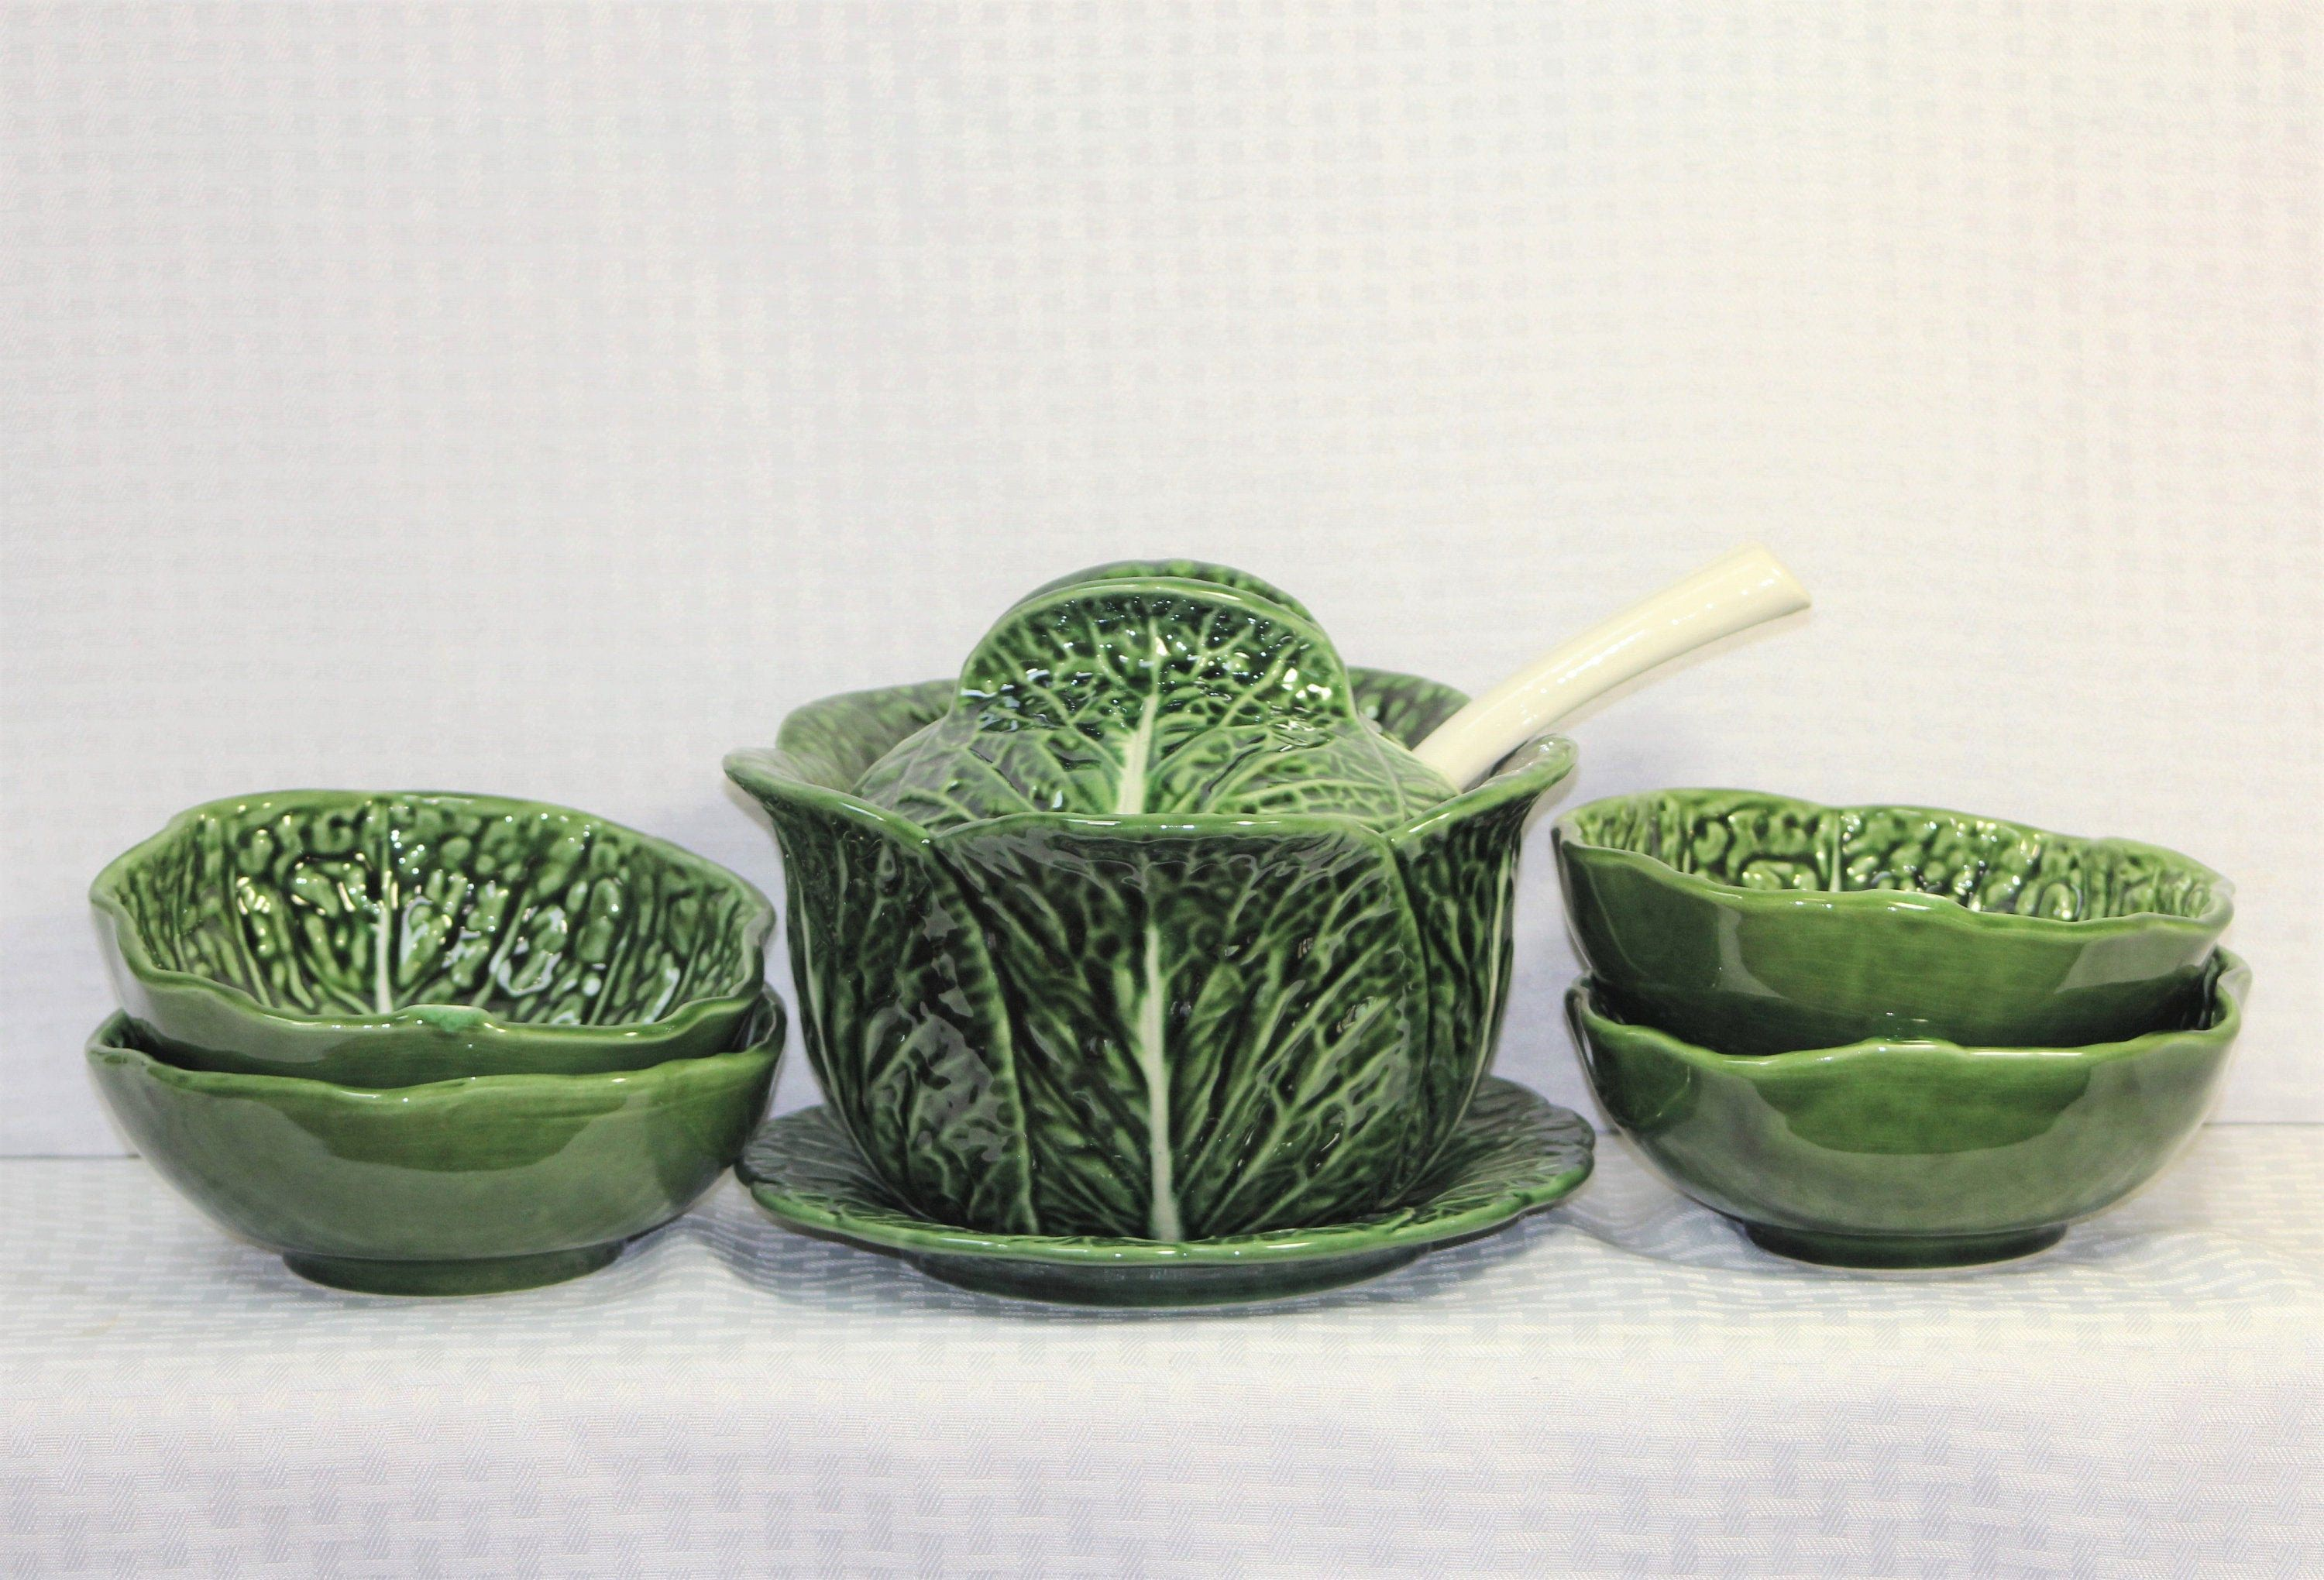 Majolica Green Cabbage Soup Set Soup Tureen Serving Plate Etsy Large Soup Bowls Cabbage Soup Green Cabbage